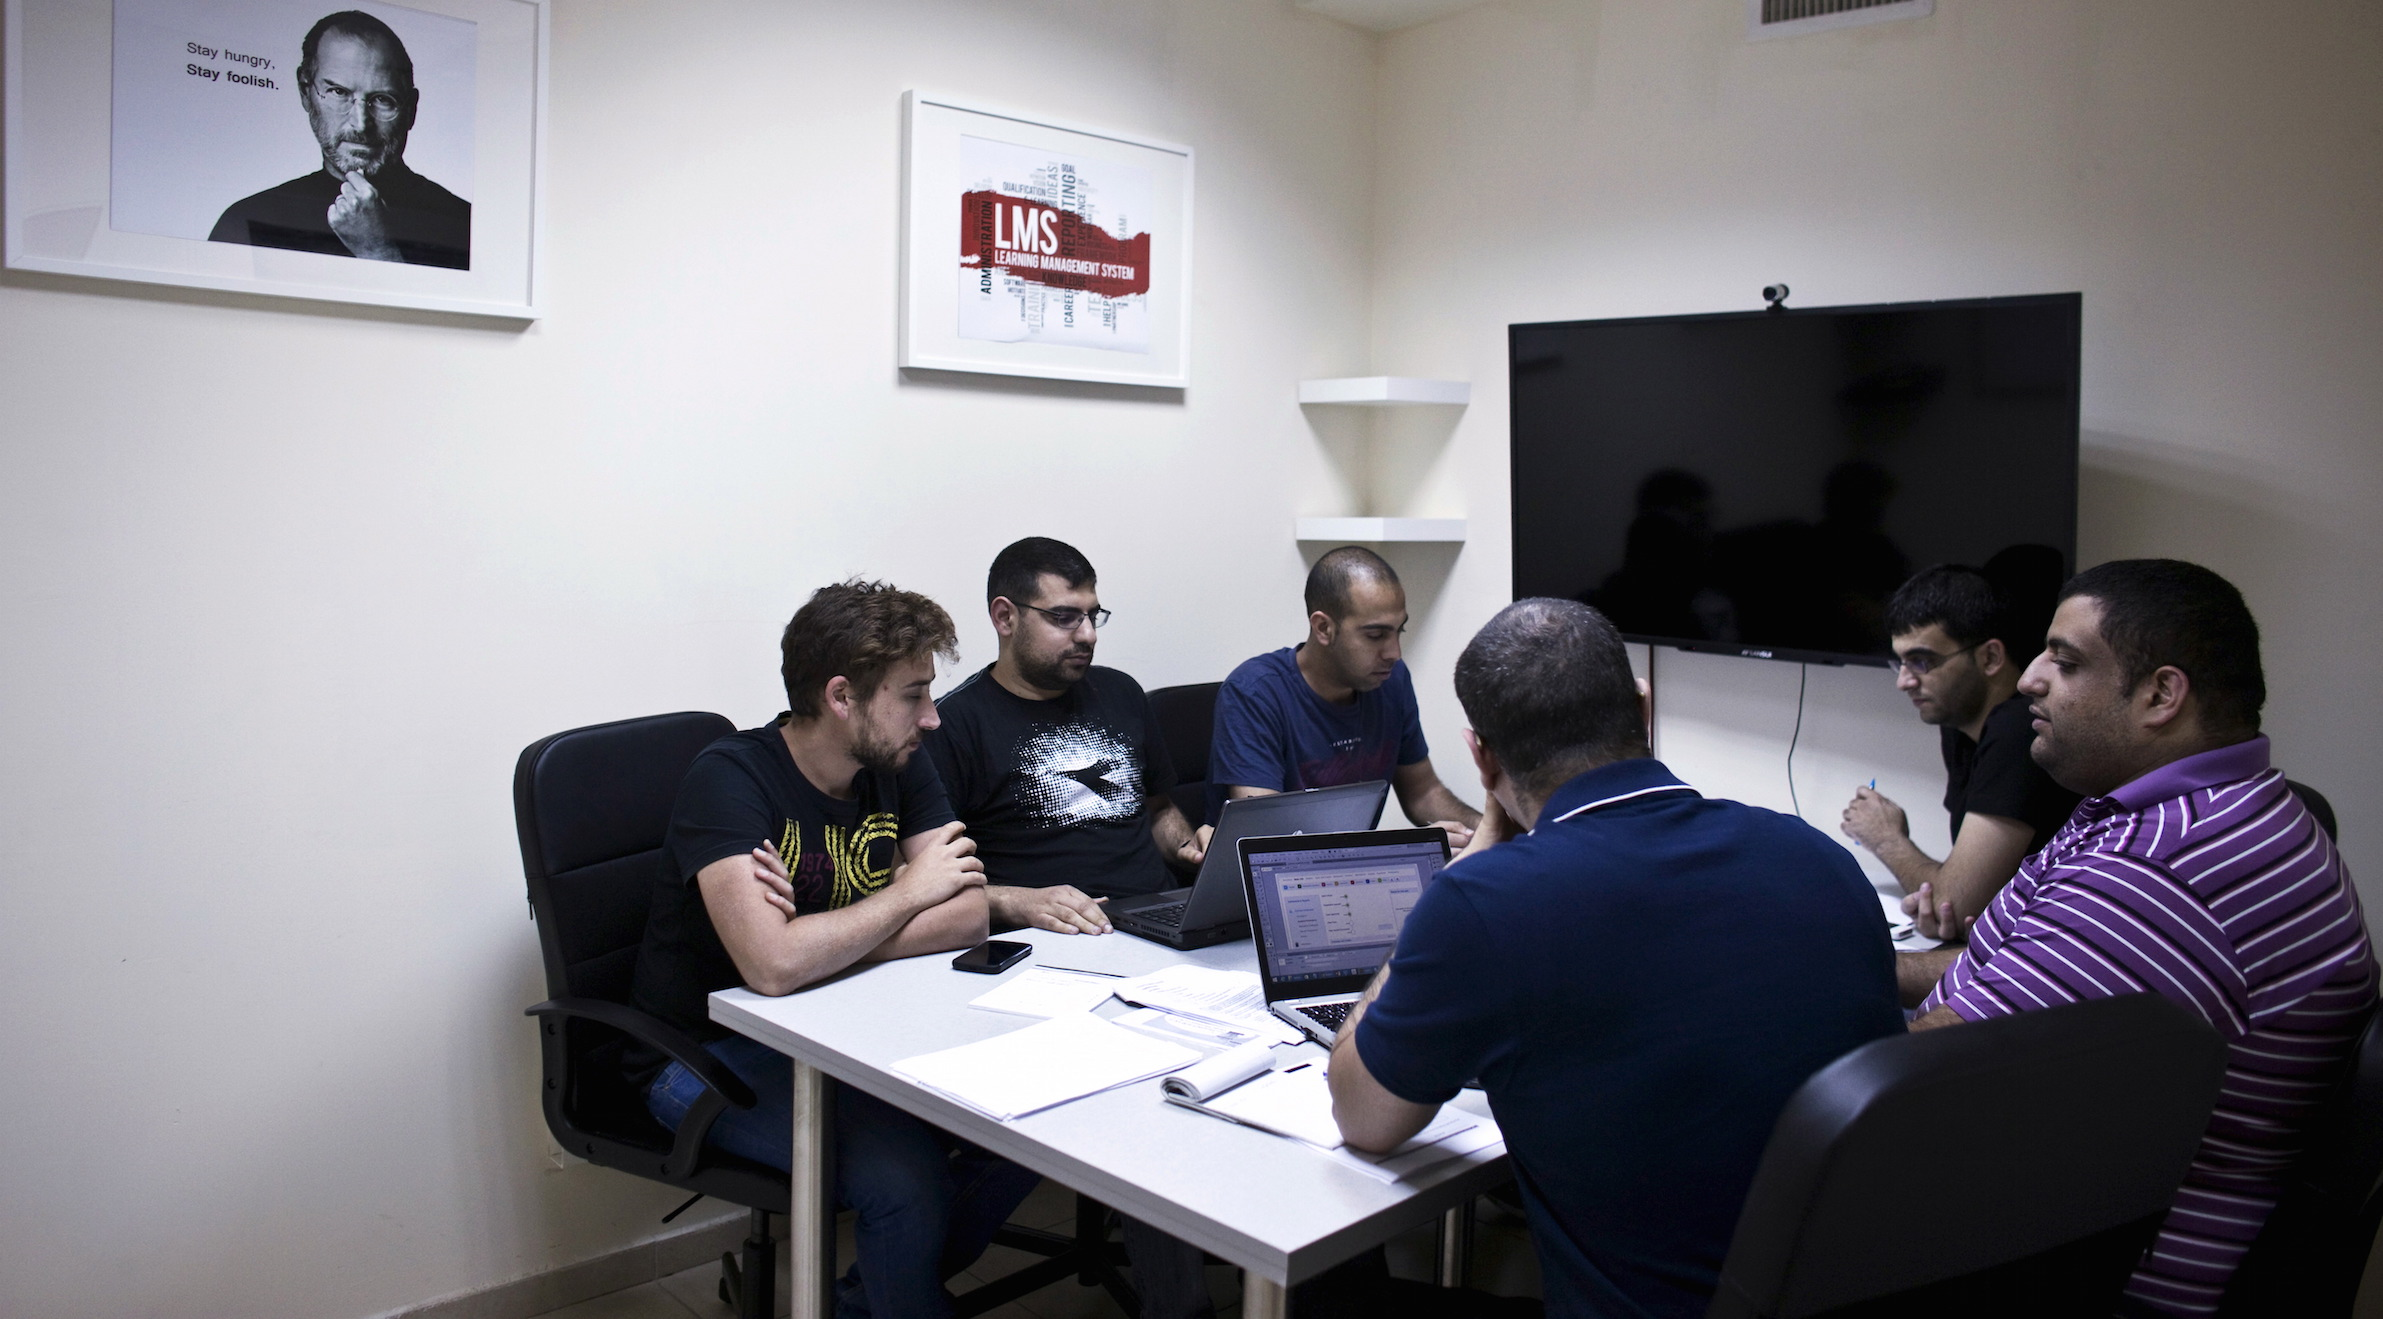 Jabbour, founder and CEO of start-up Edunation, meets with his team at their offices in Nazareth